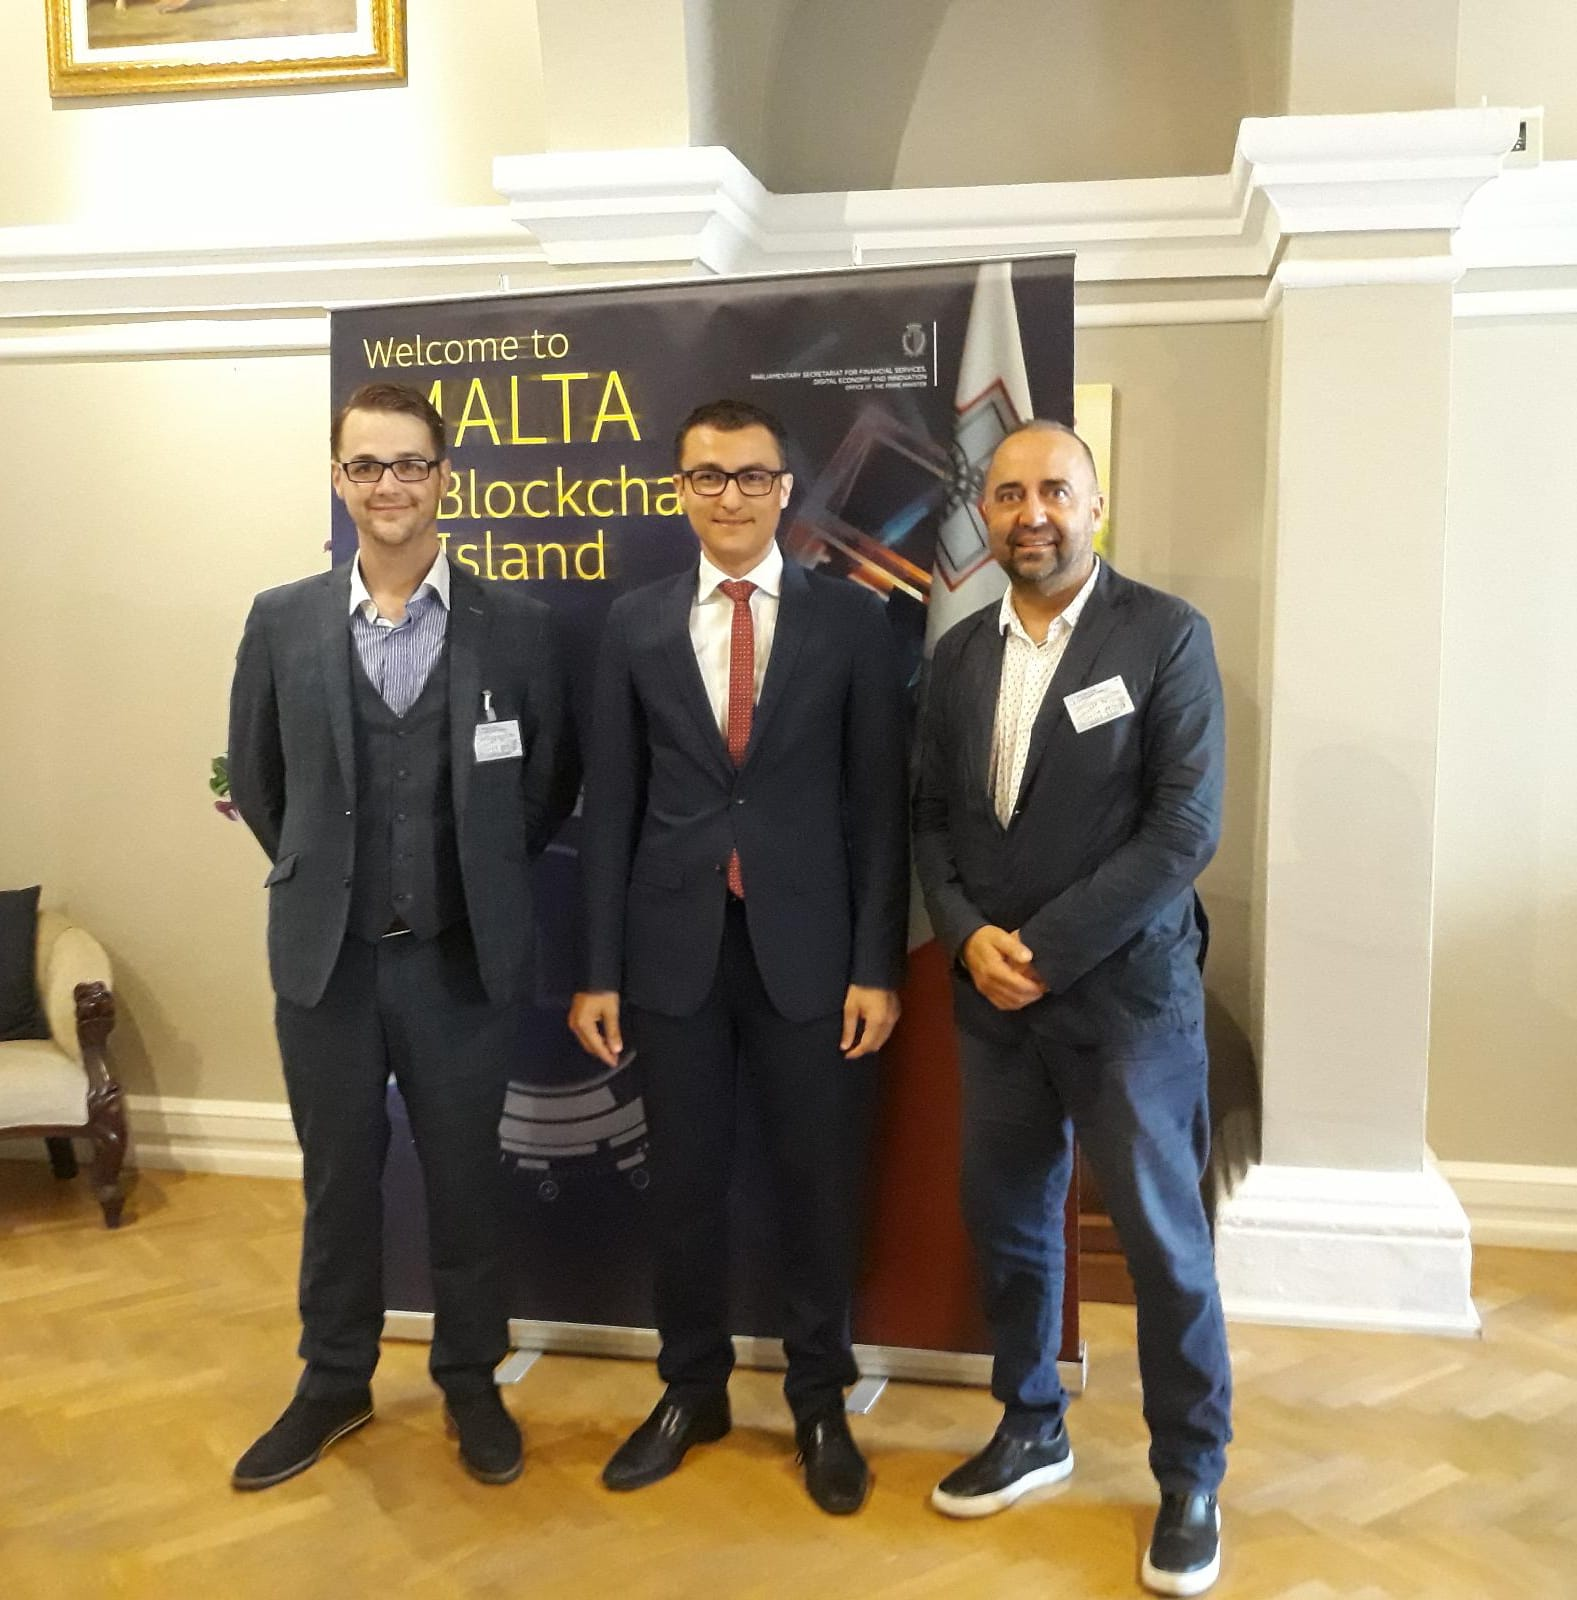 Meeting with Silvio Schembri, Maltese parliamentary secretary who embraces crypto currencies